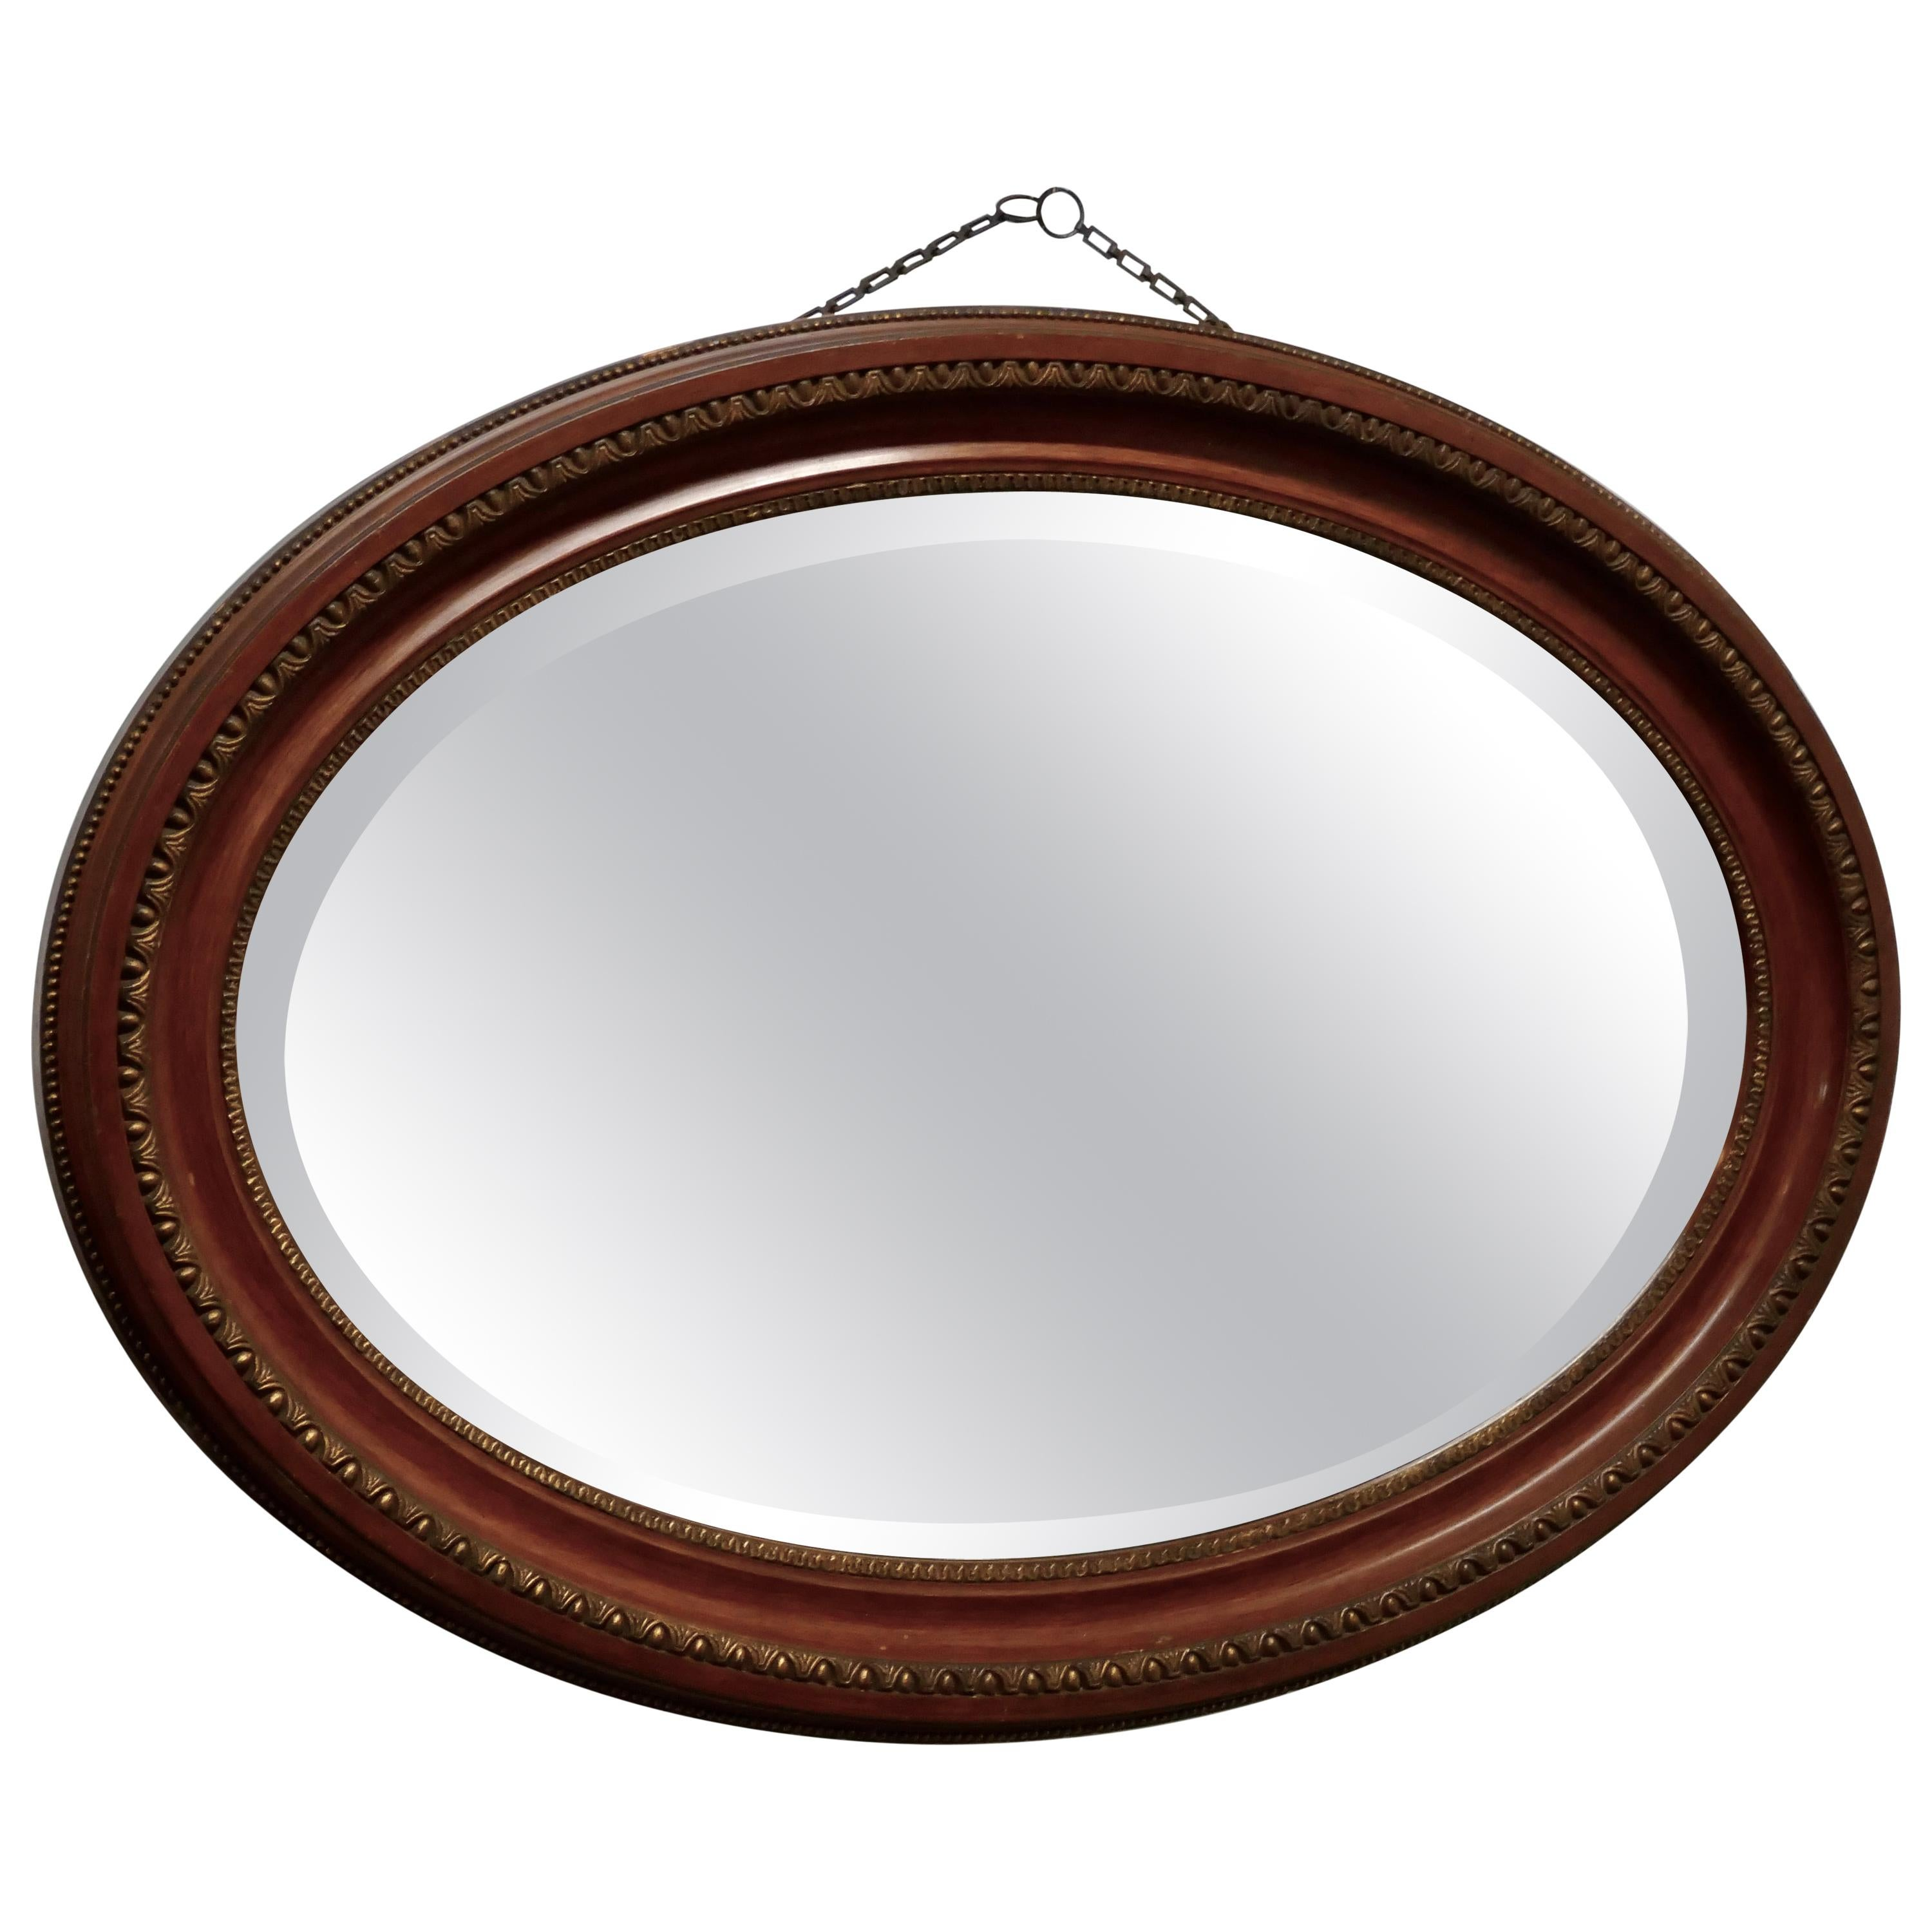 Large Edwardian Oval Wall Mirror